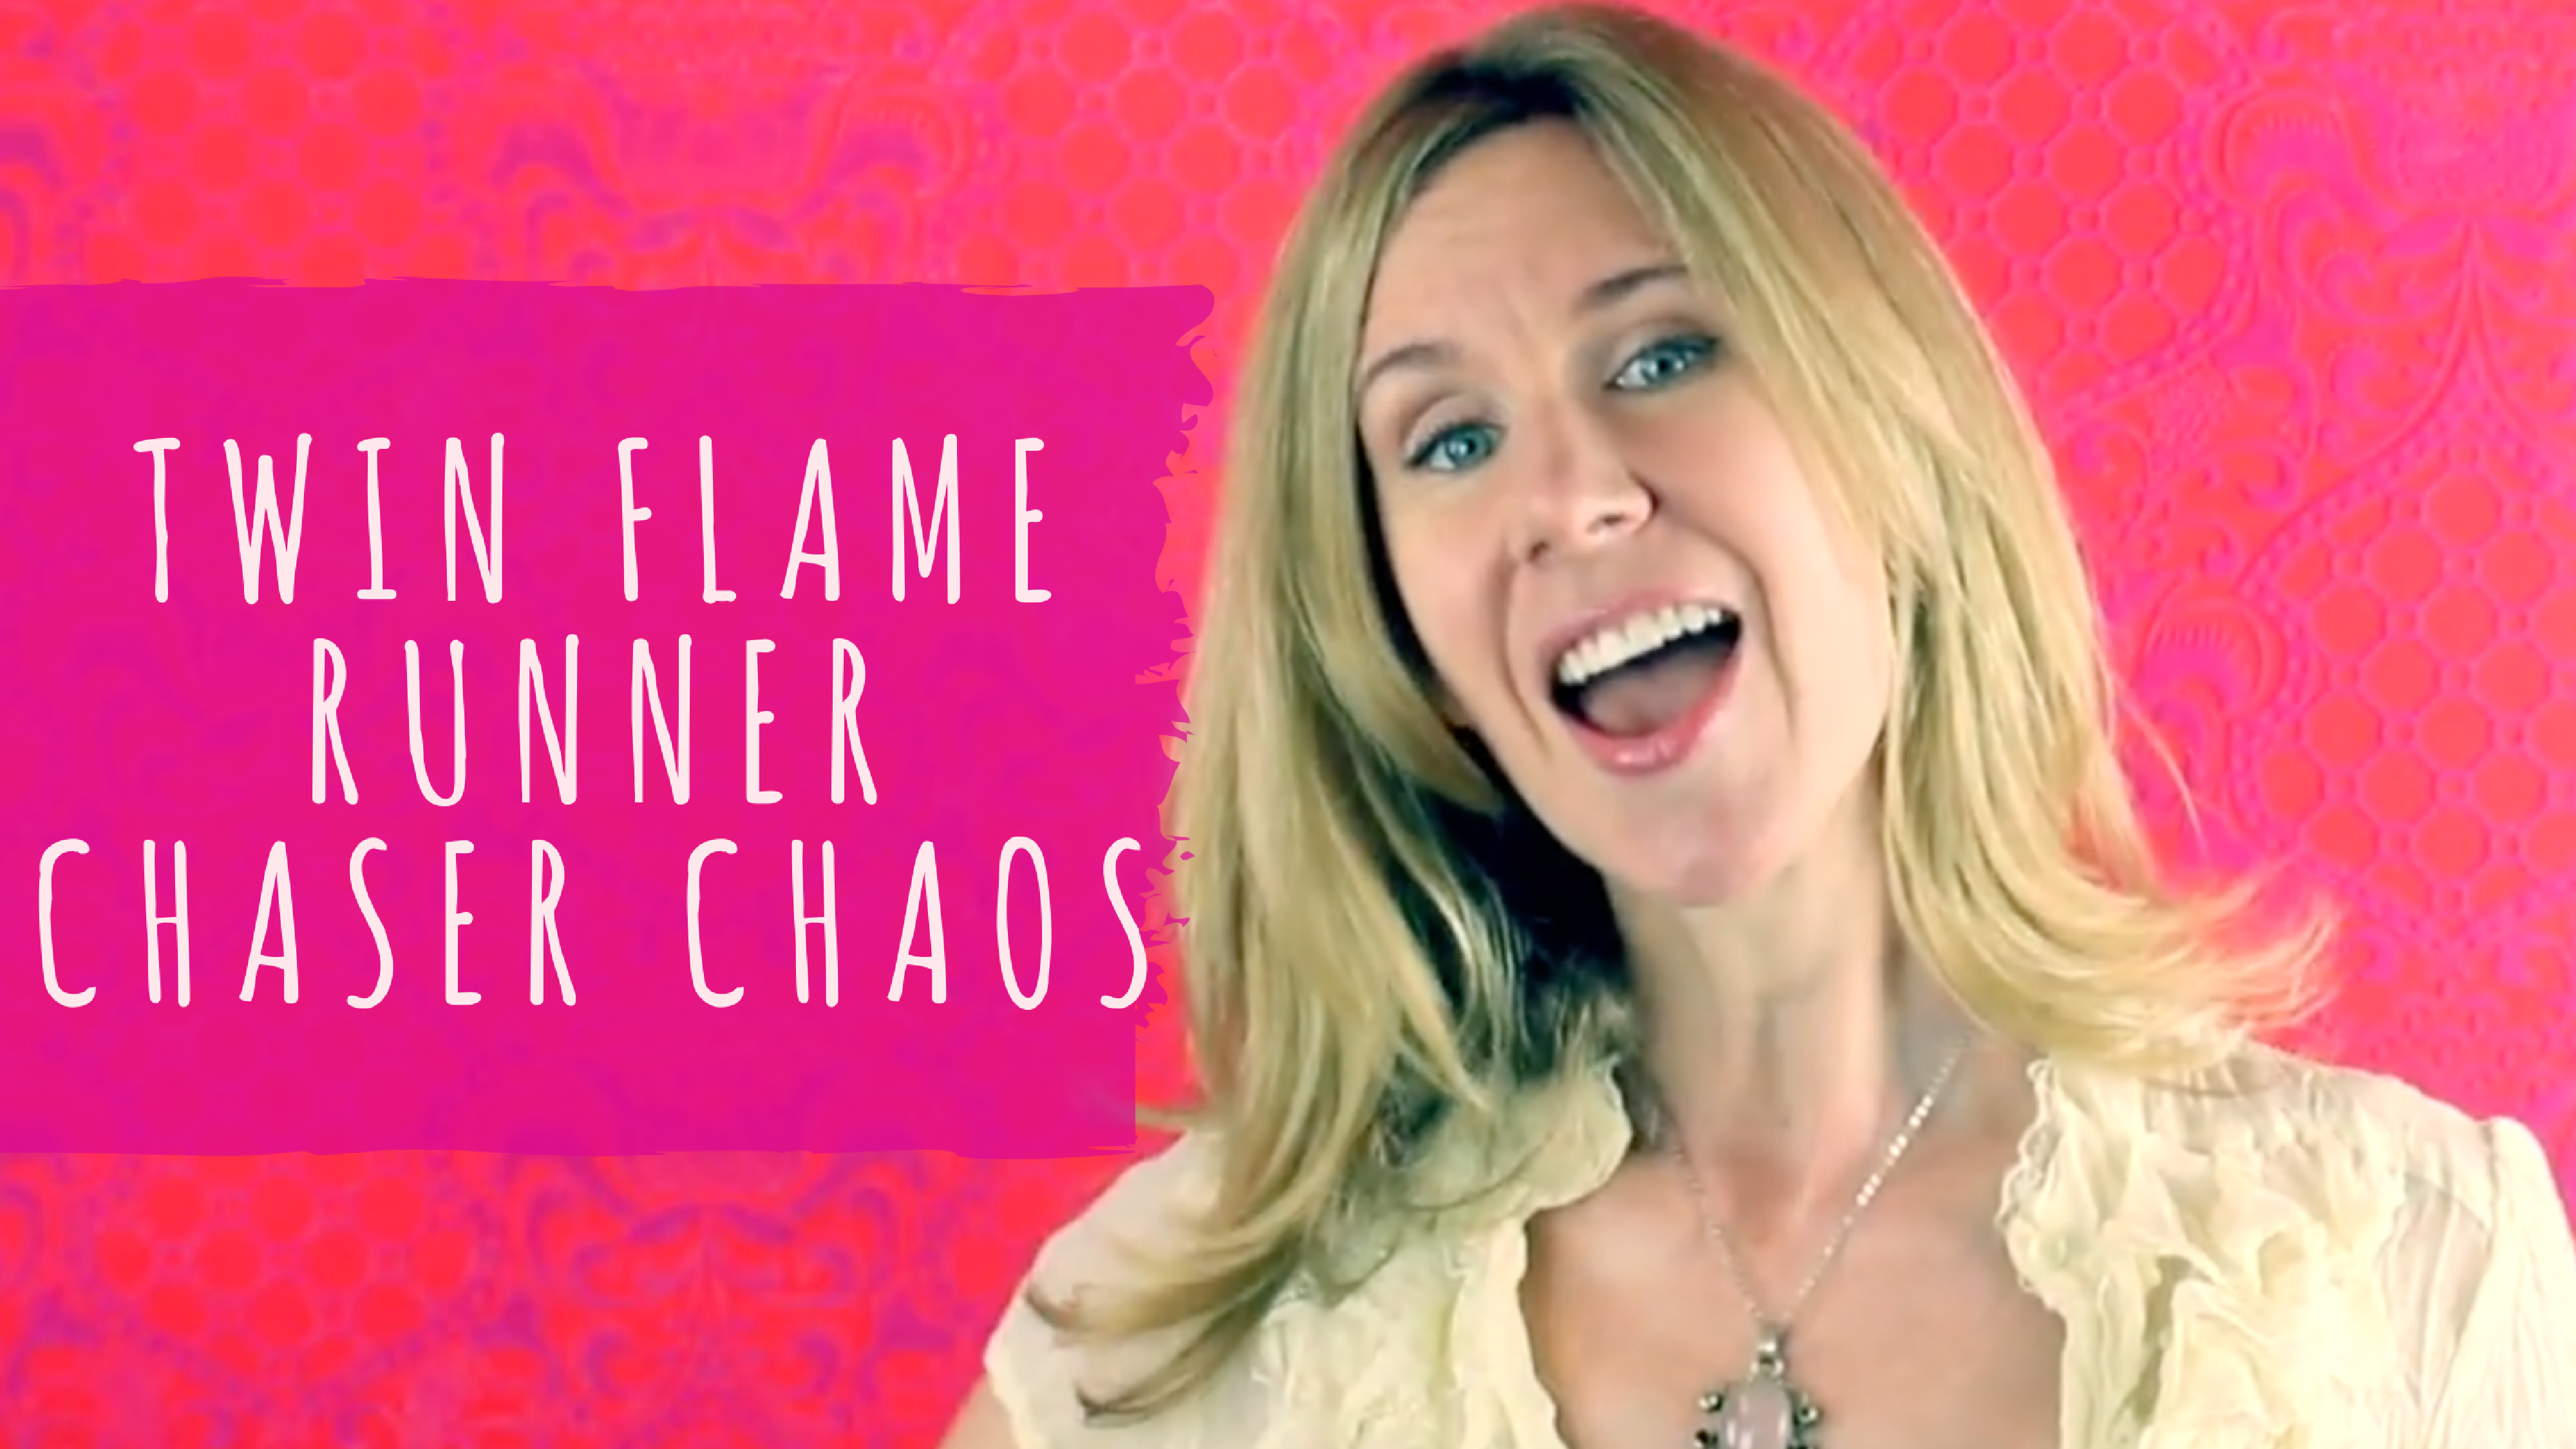 Twin Flame Runner Chaser Chaos, or Is it a Karmic Thing